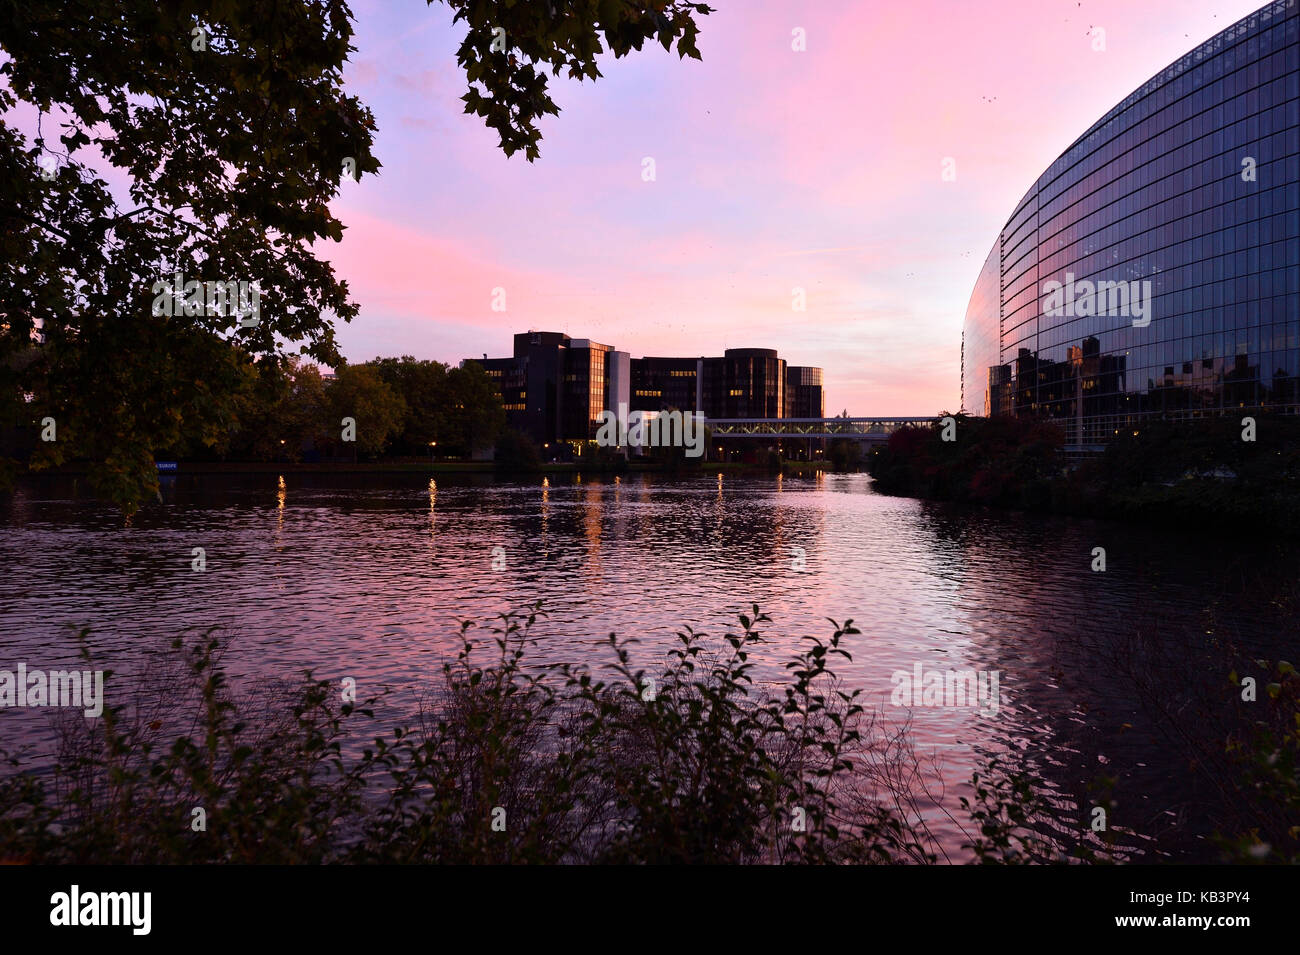 Parlement stock photos parlement stock images alamy for Architecture firms in europe